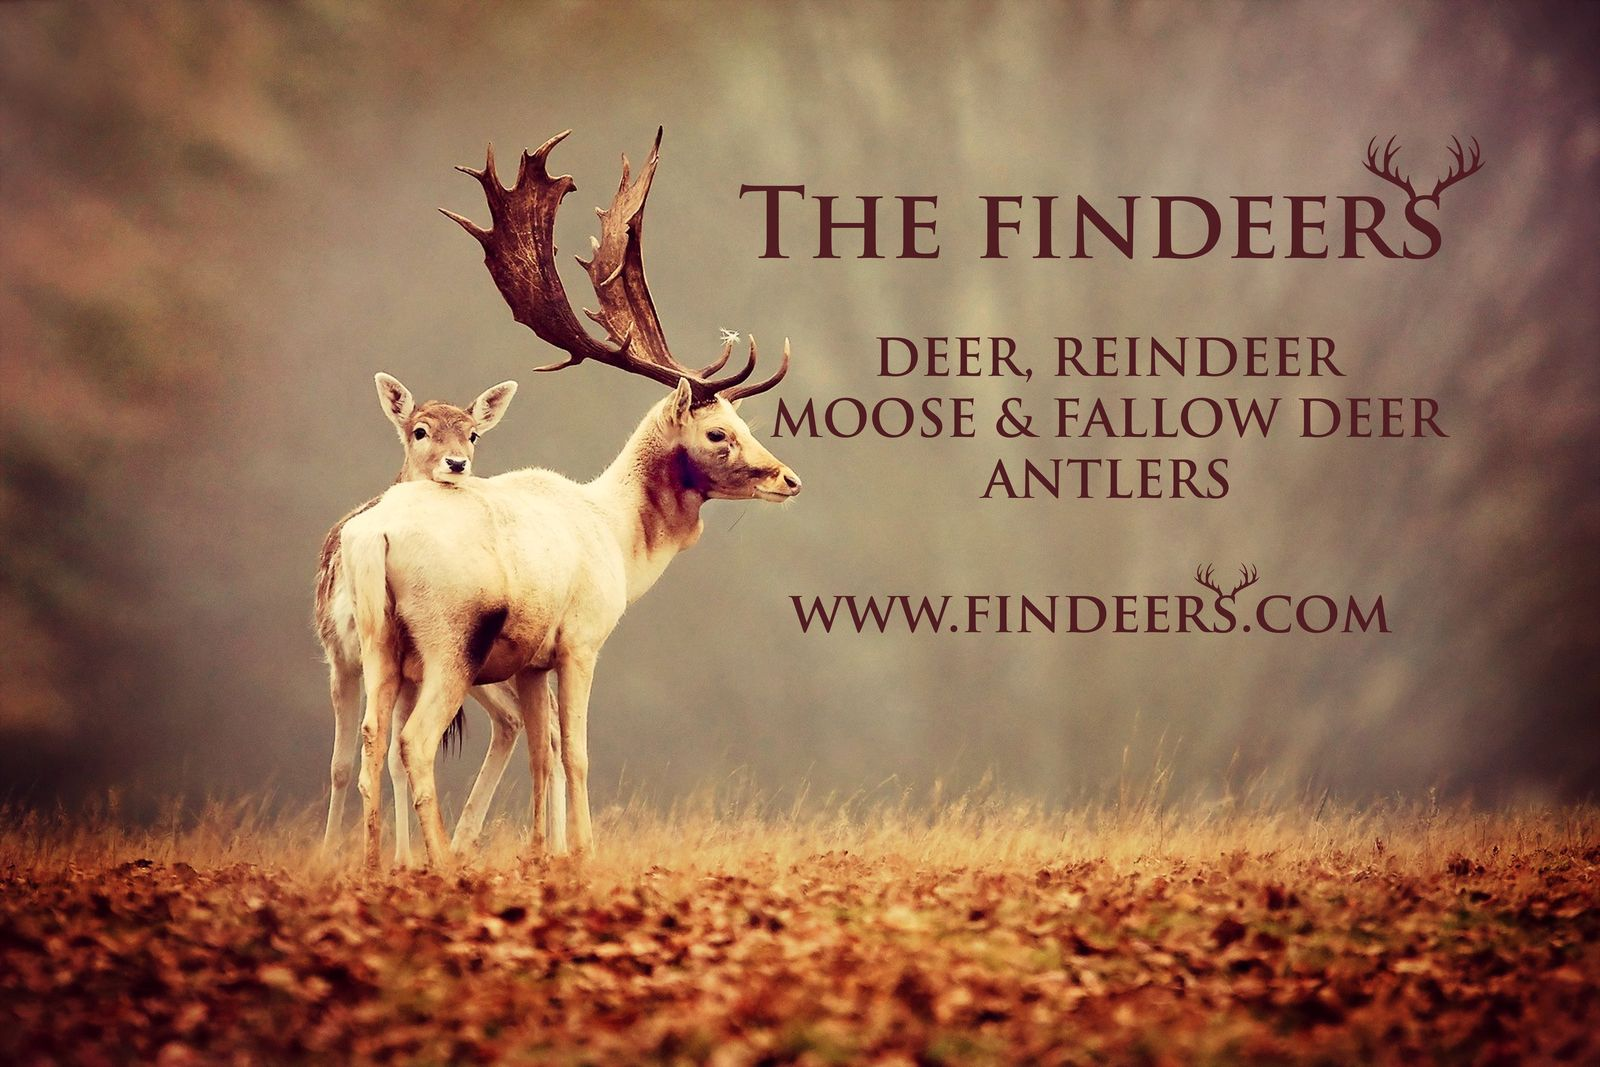 The Findeers Main Image